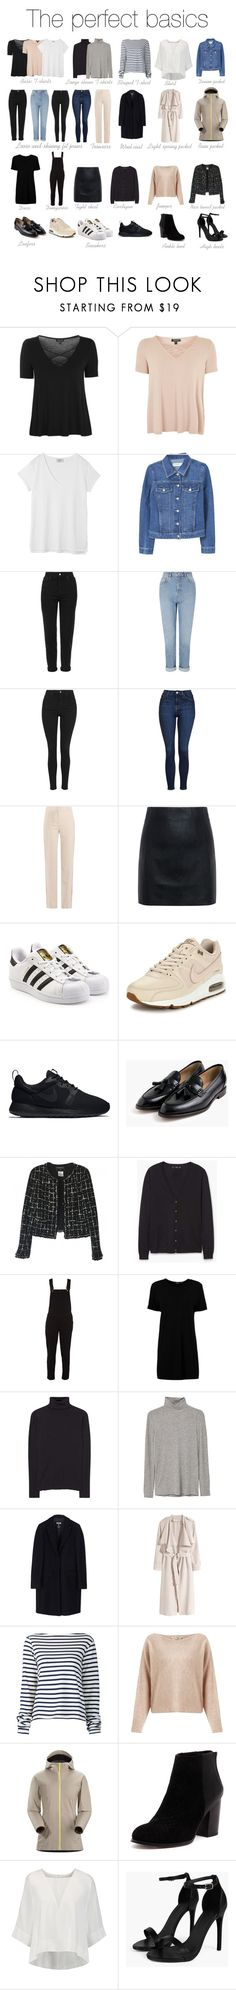 """""""The basics"""" by ida-kruse-knudsen on Polyvore featuring Topshop, Hush, MANGO, Miss Selfridge, Givenchy, McQ by Alexander McQueen, adidas Originals, NIKE, J.Crew and Chanel"""